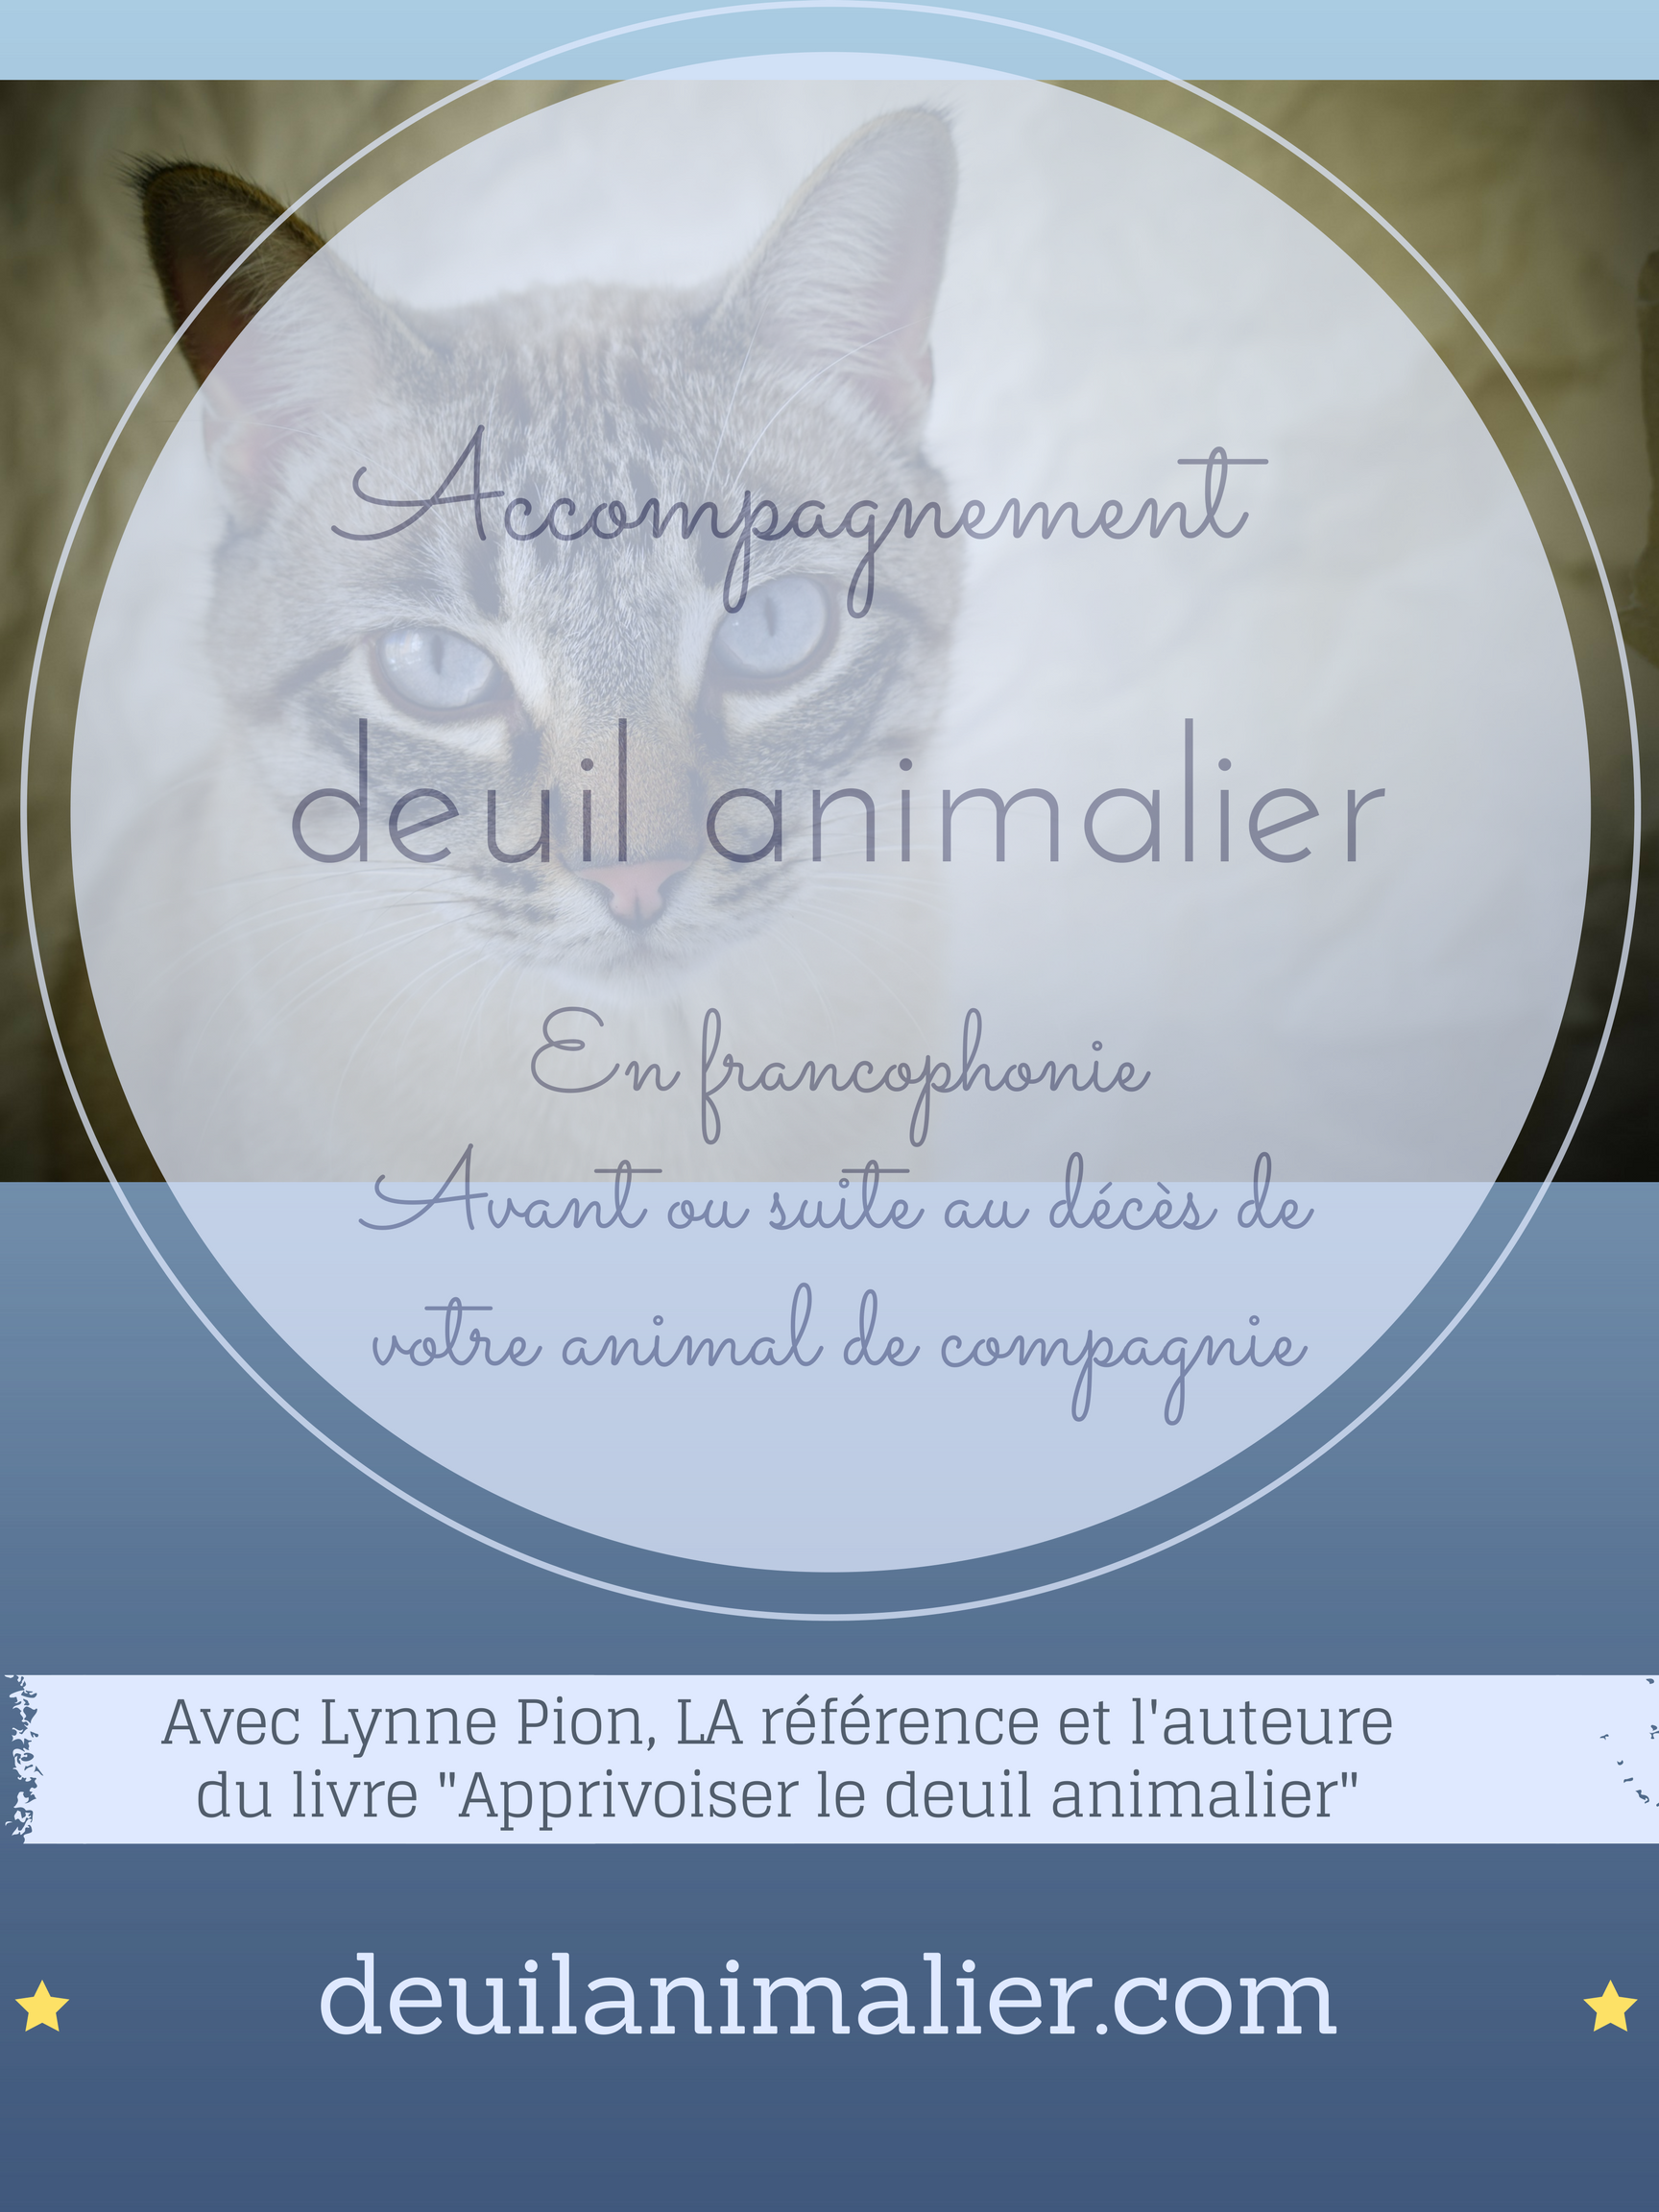 Accompagnement au deuil animalier 2 avec Lynne Pion.png